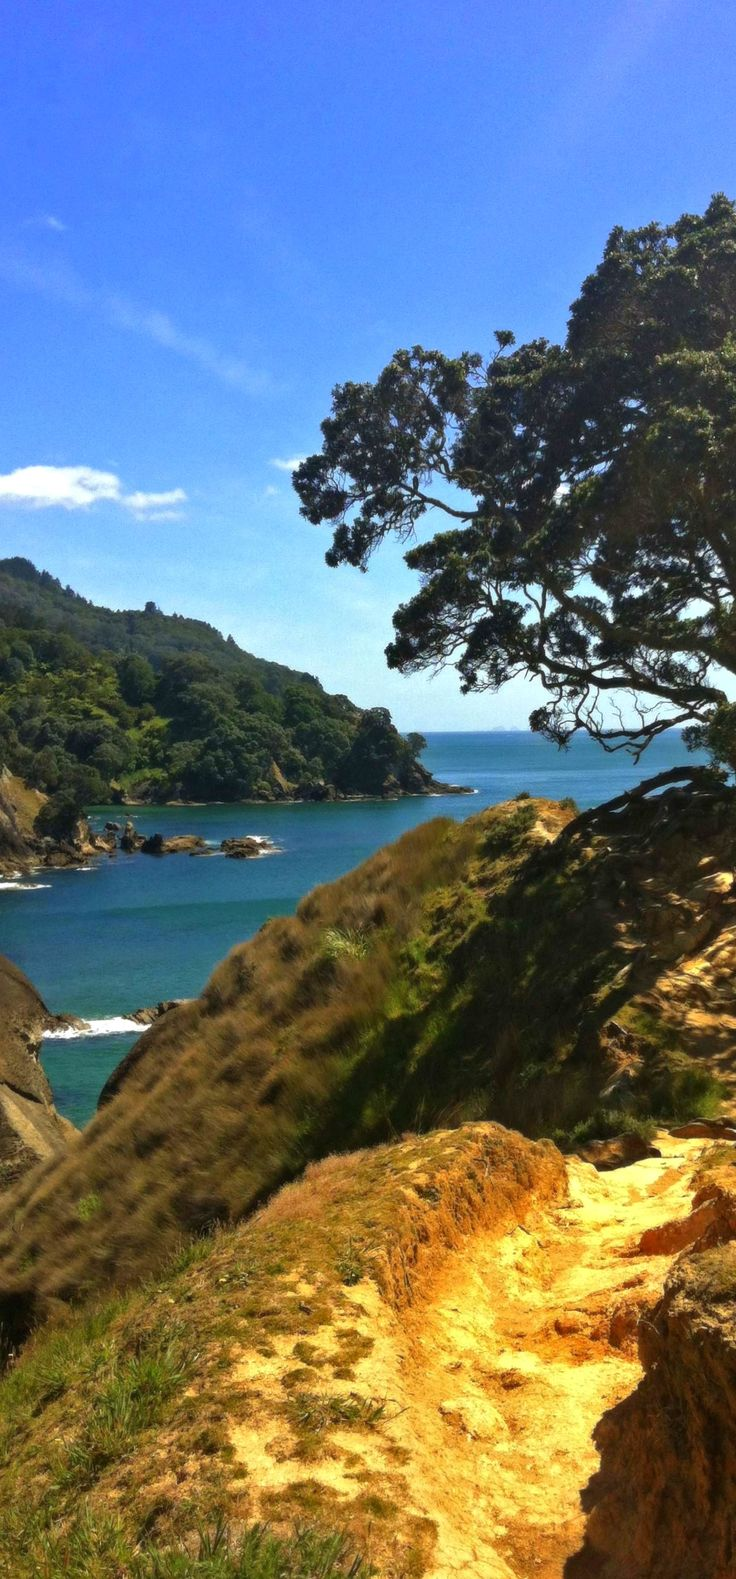 Orokawa Bay, Waihi Beach, Bay of Plenty, New Zealand